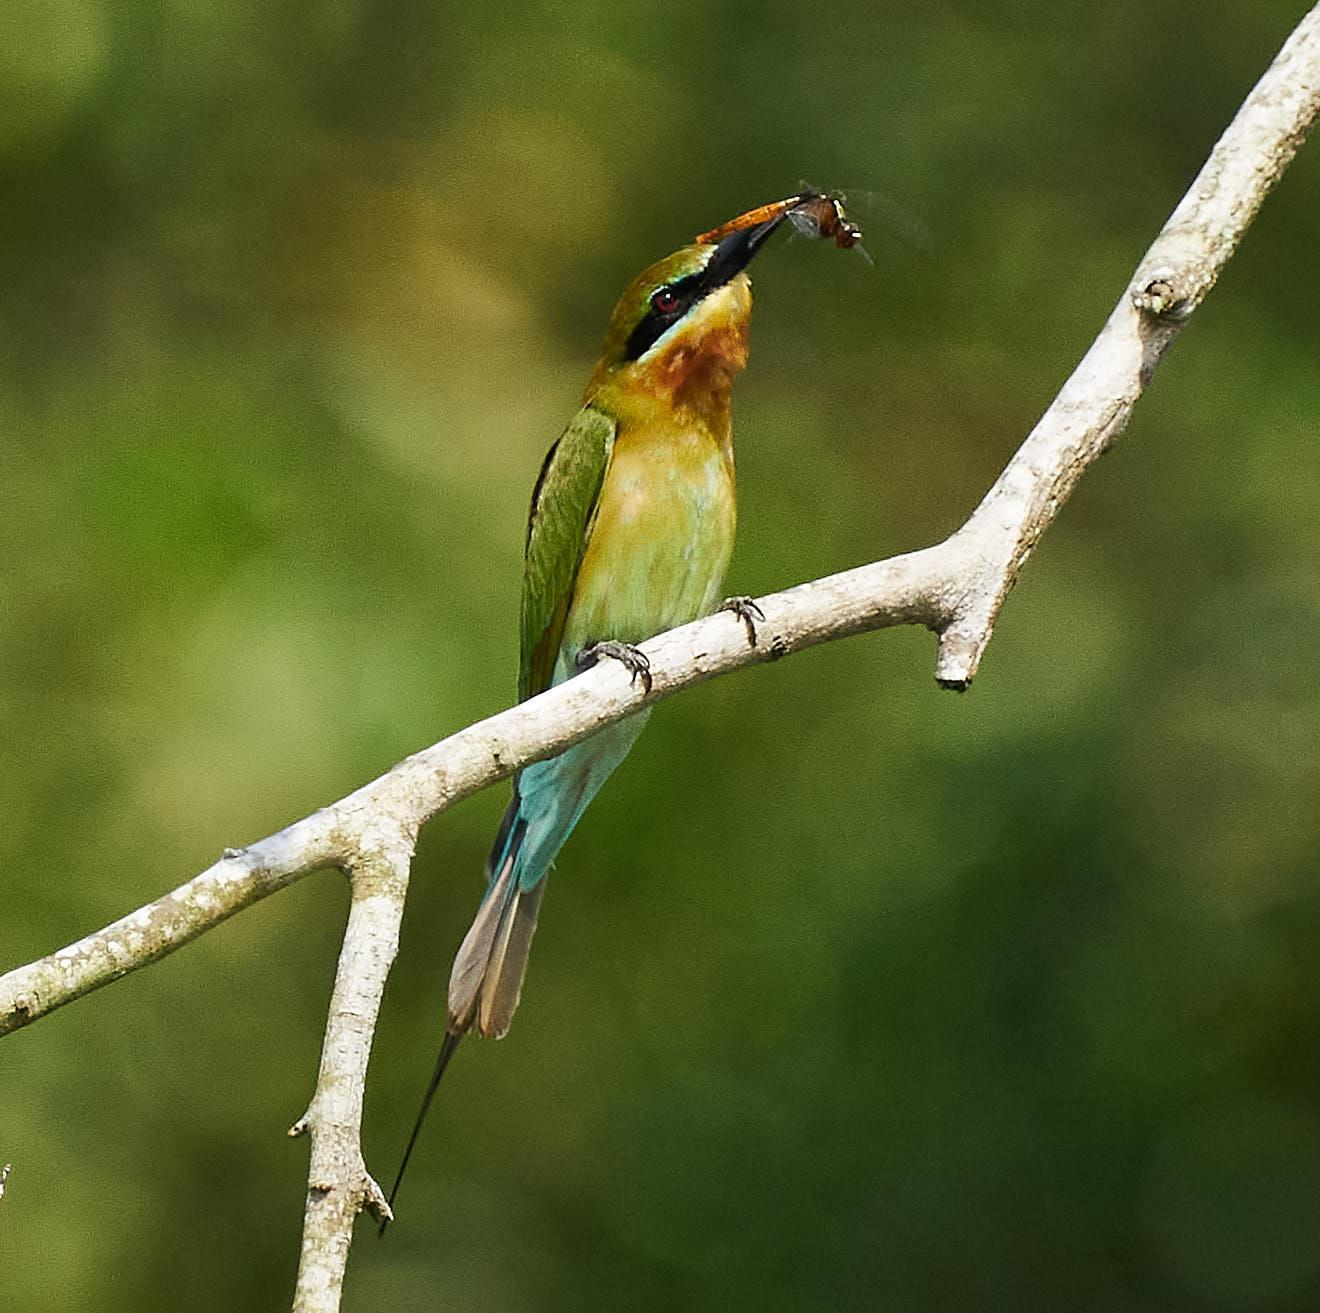 Blue-tailed Bee-eater Photo by Steven Cheong